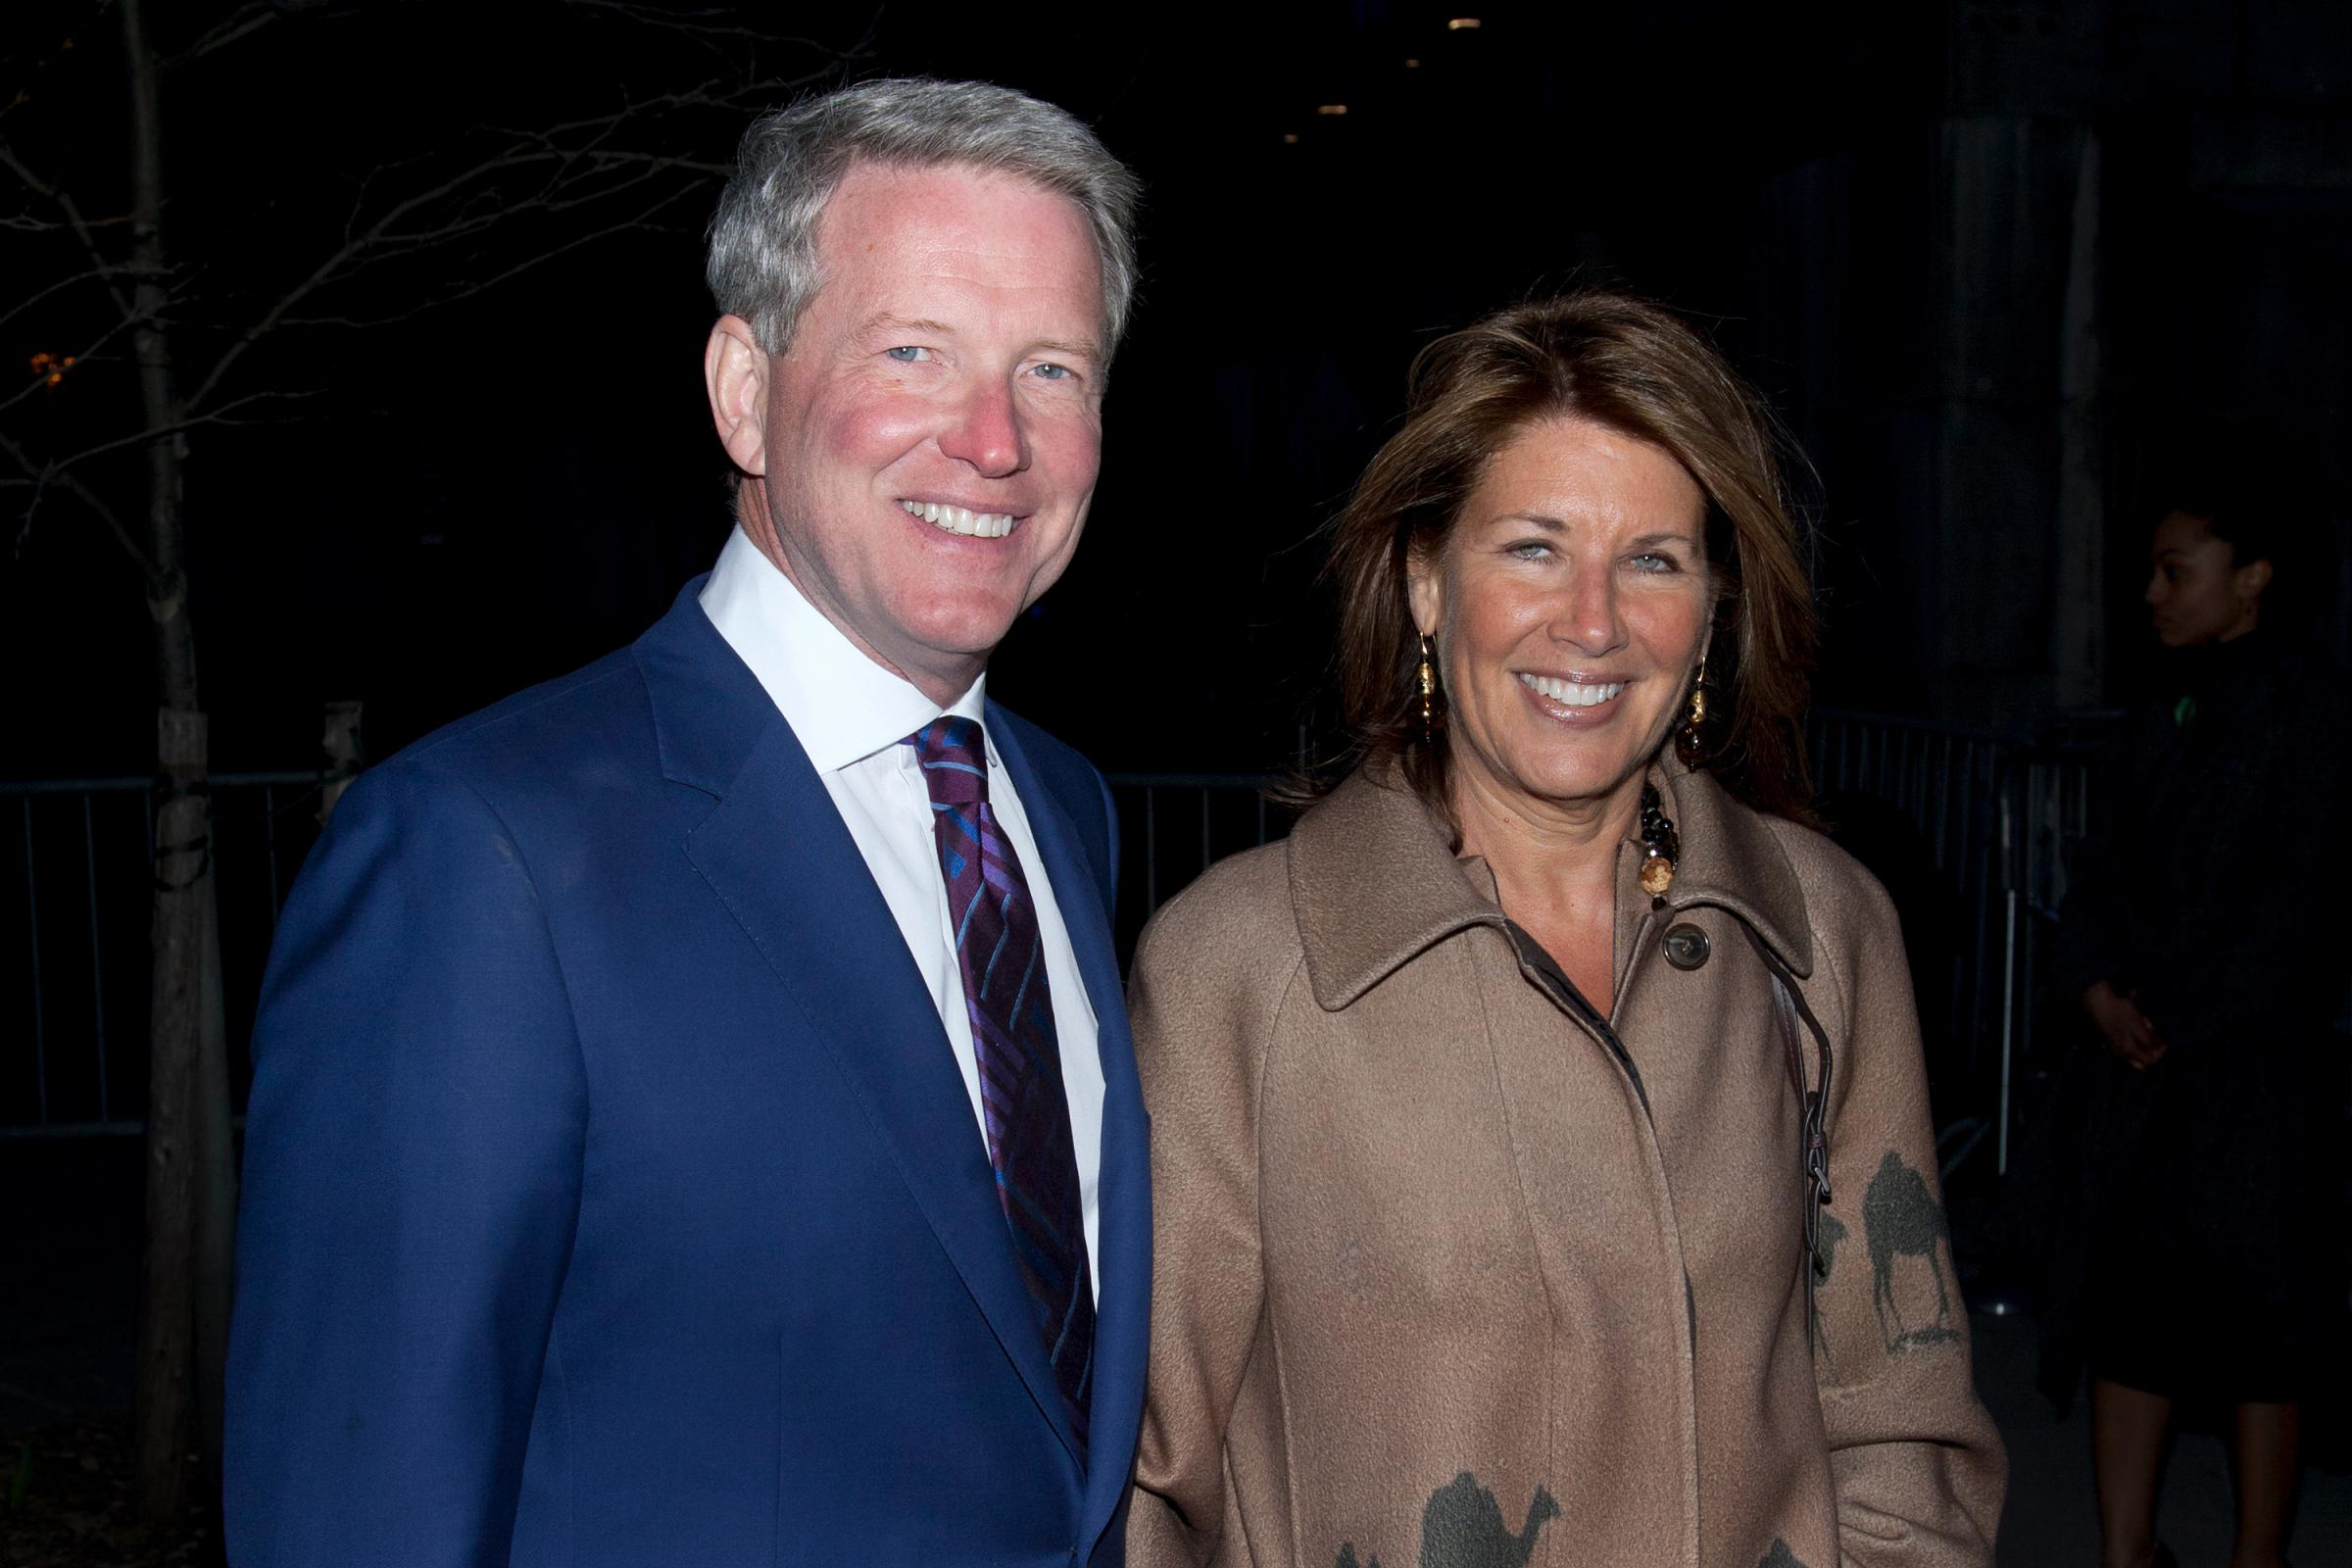 Former ABC News Chief Encounters Learning Curve As